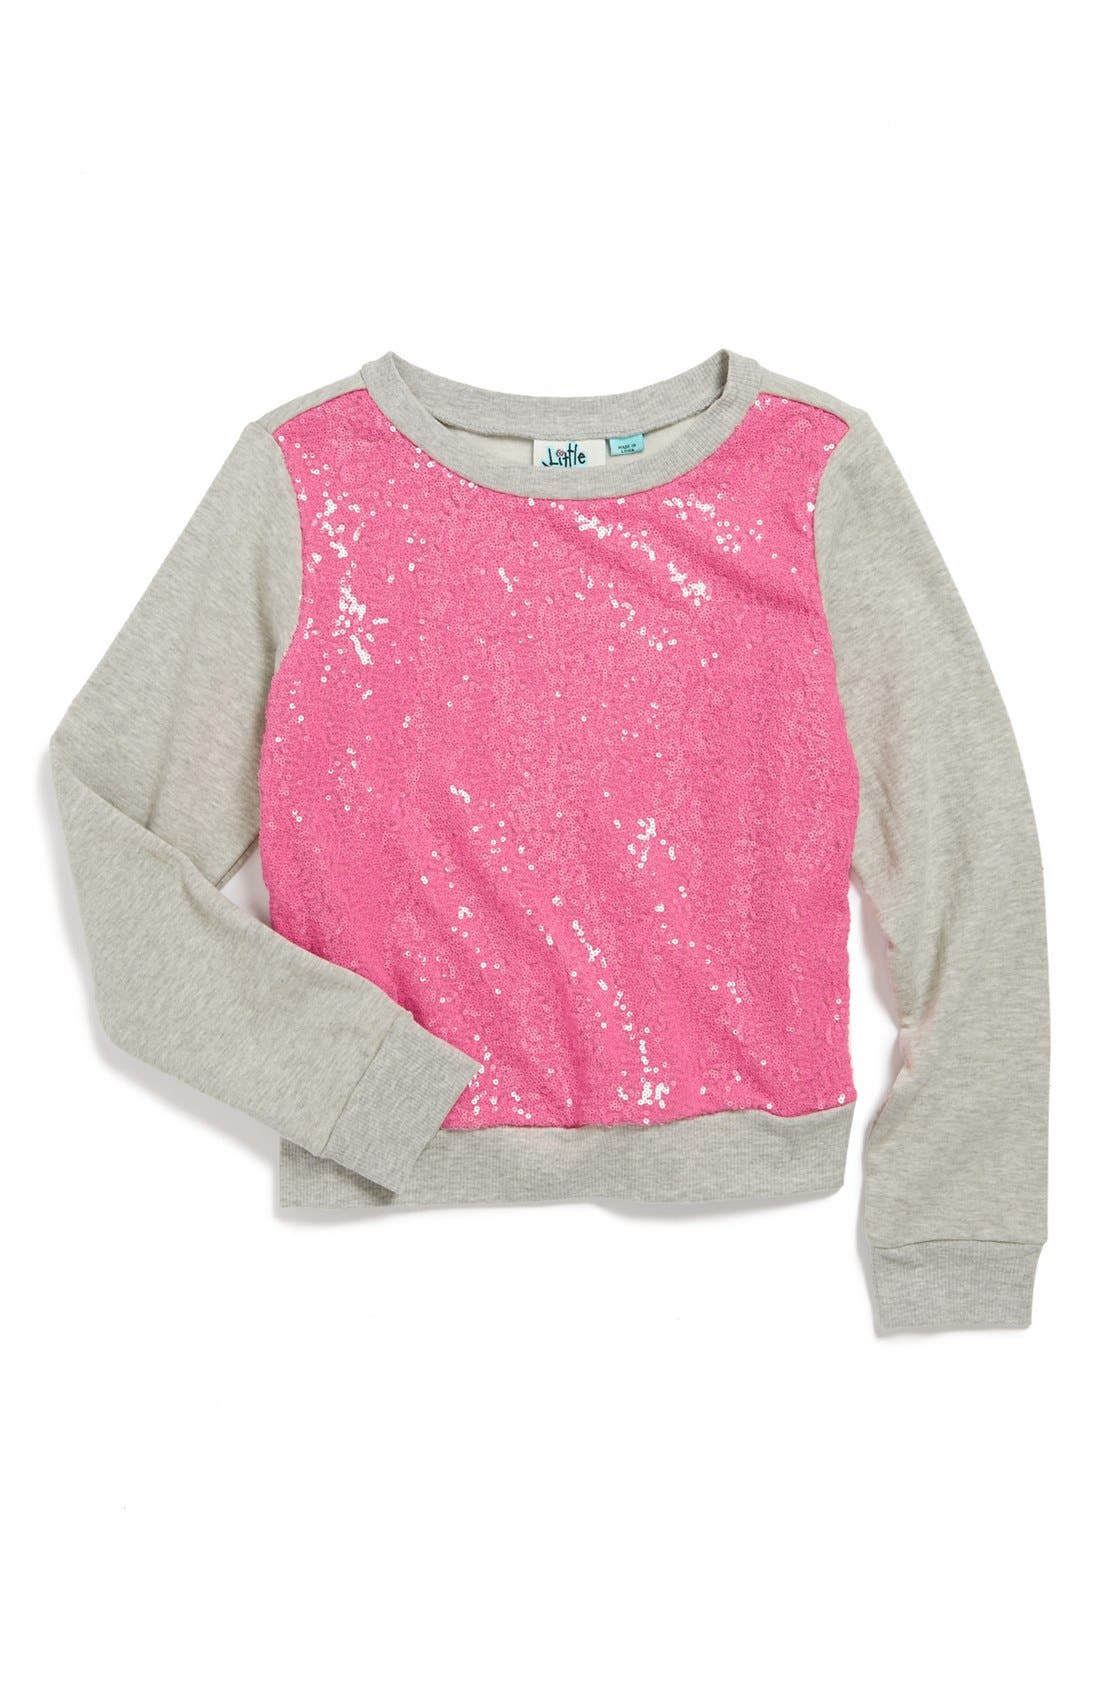 Main Image - Miken Clothing Sequin Sweatshirt (Big Girls)